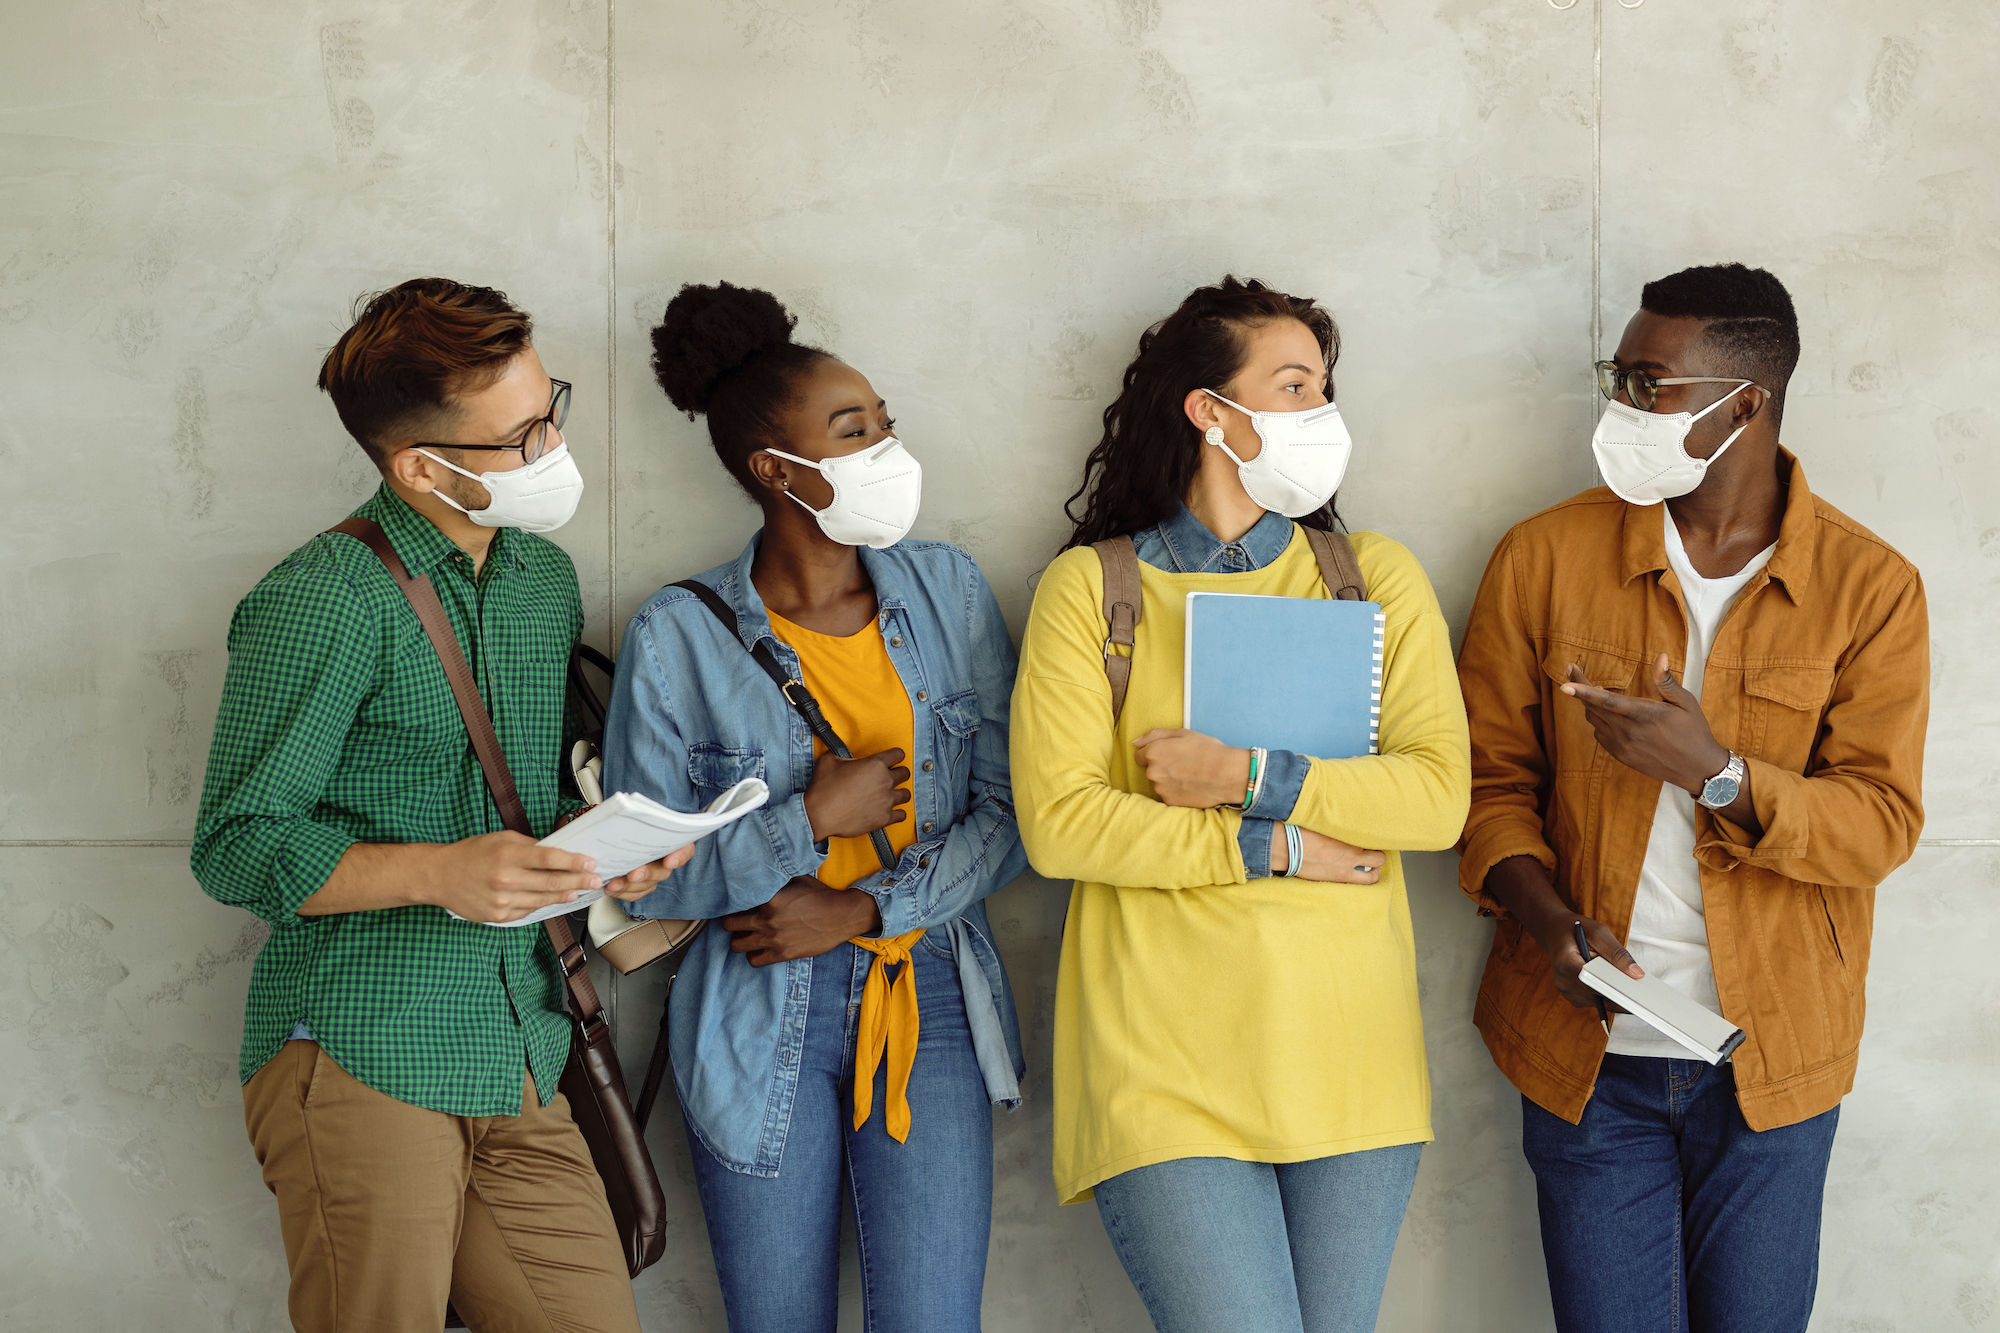 A group of four people leaning against a wall. The one farthest on the left is wearing a bag diagonal across the chest and holding papers. The second from left has on a purse. The second from right has on a backpack and is holding a blue spiral notebook. The person all the way on the right is pointing to the others and holds a folded piece of white paper and a writing utensil.